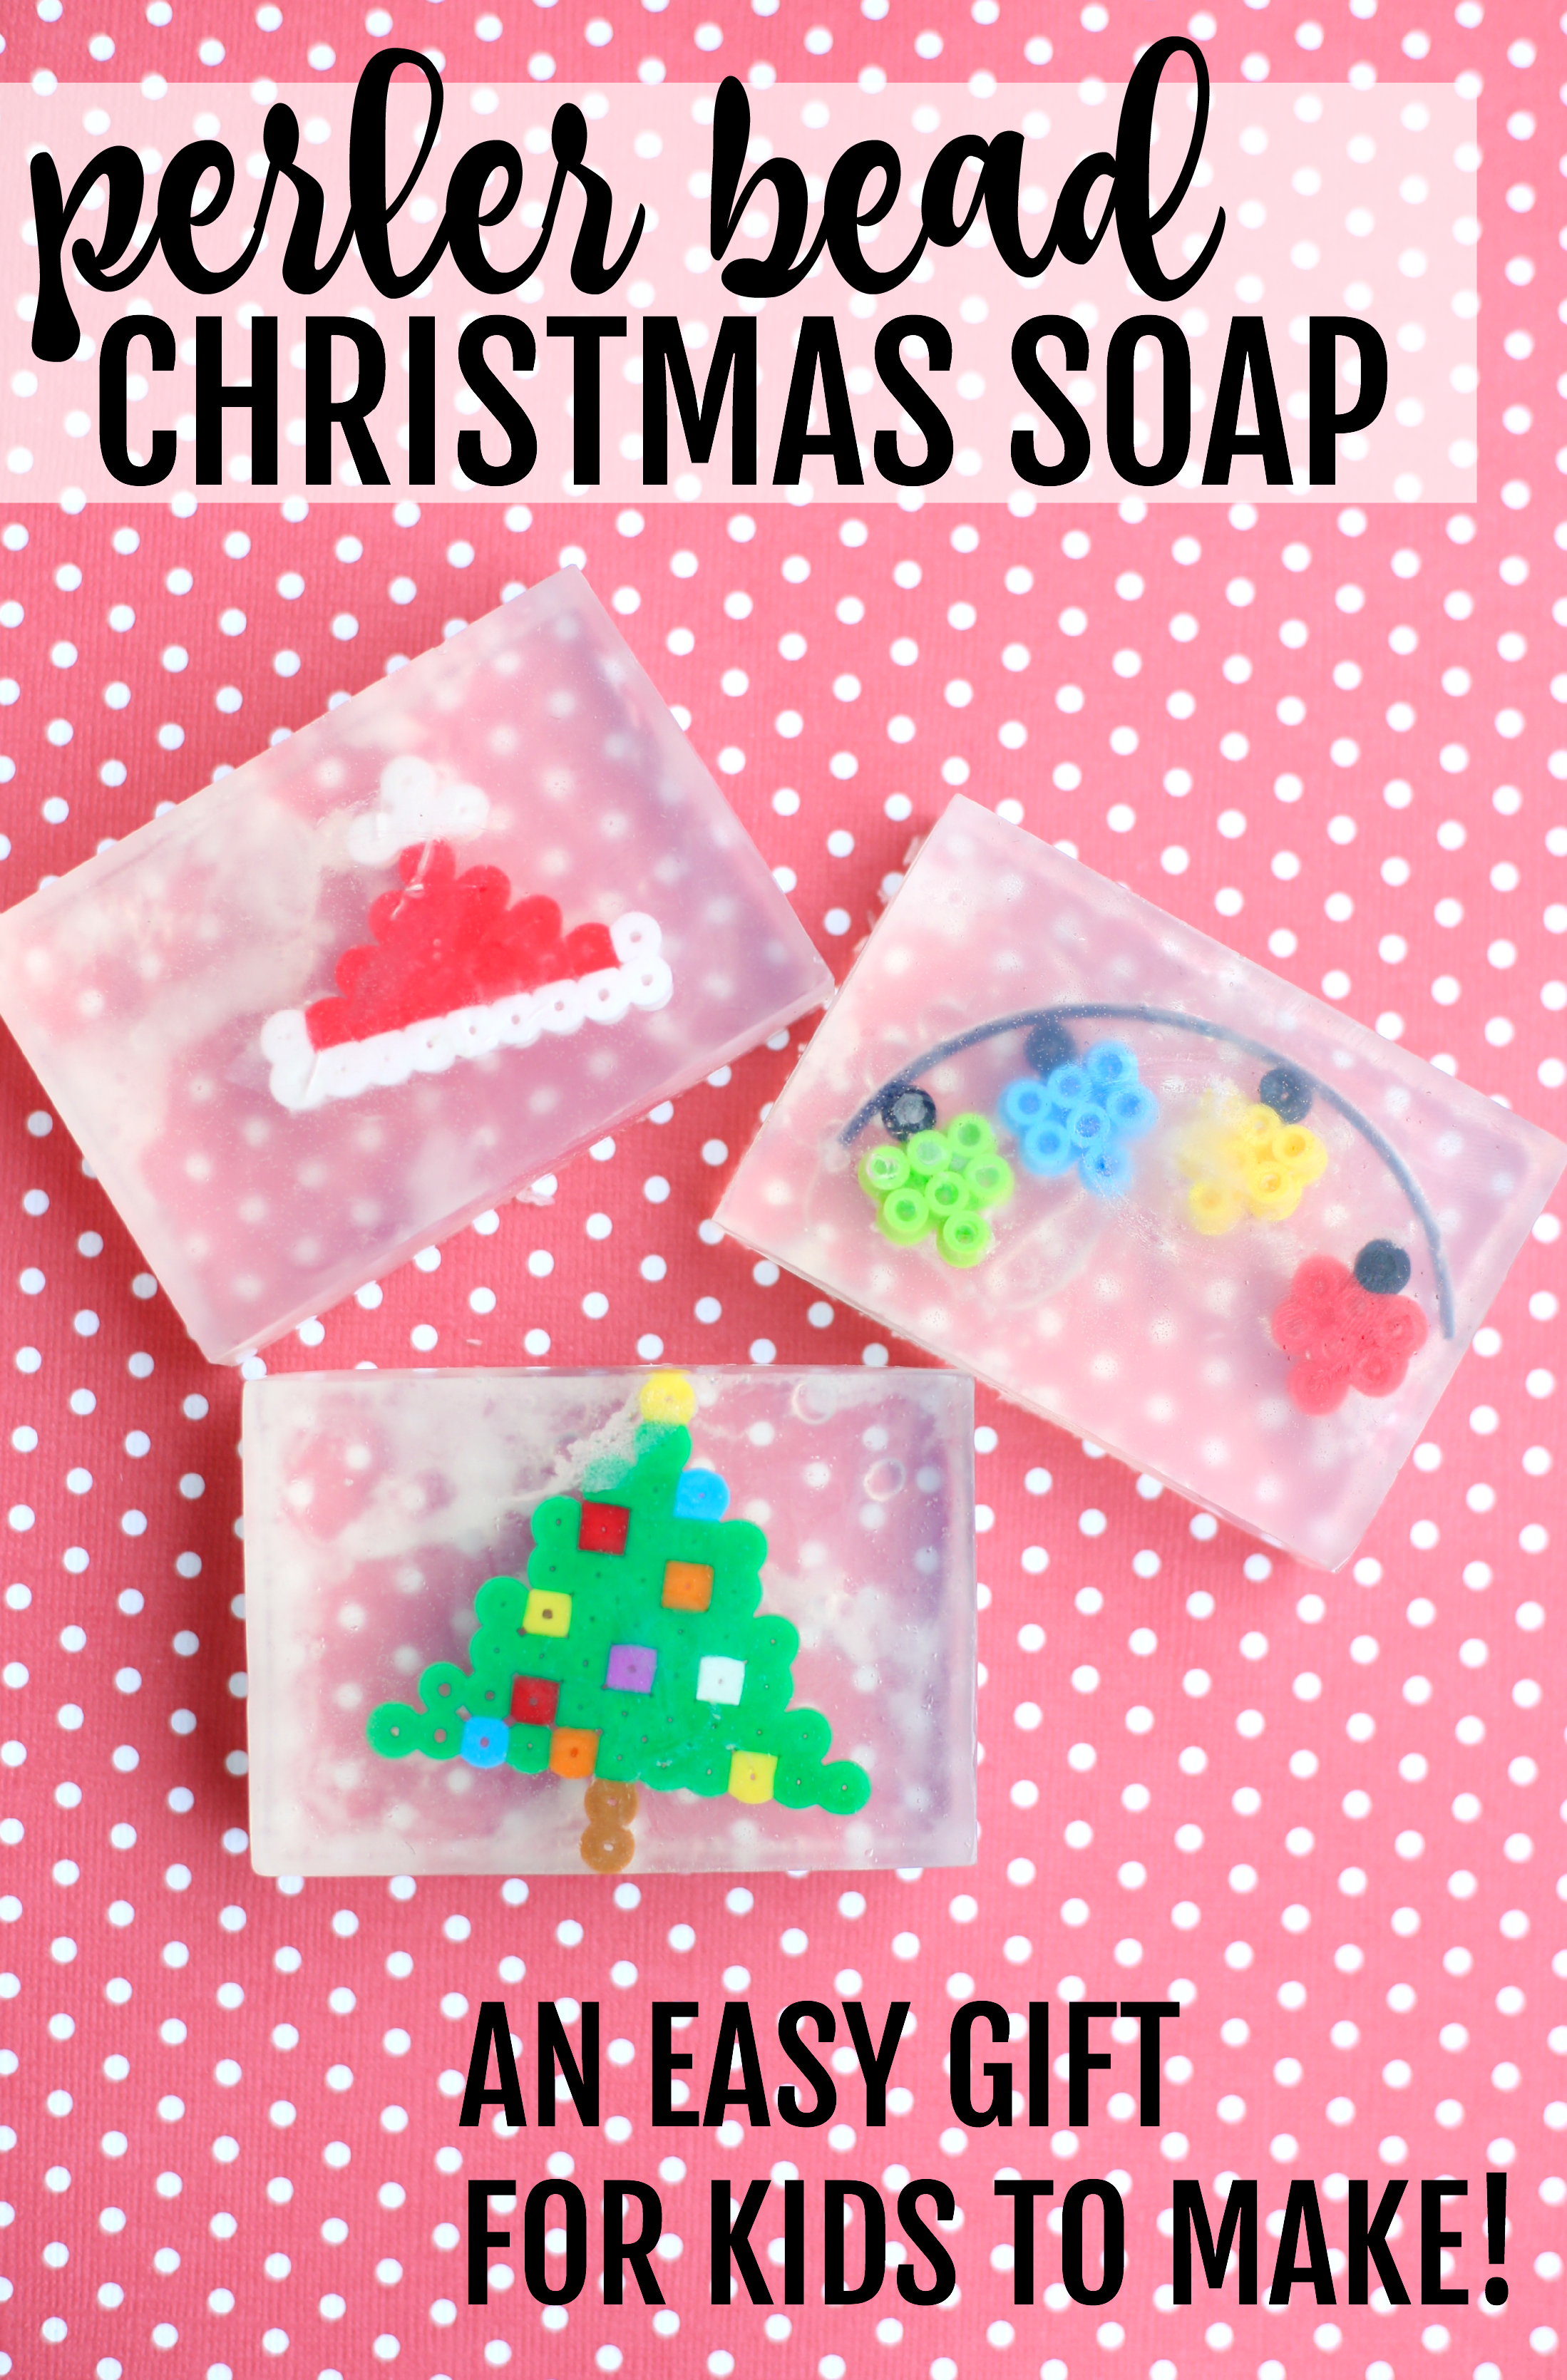 41+ Easy crafts to make for gifts ideas